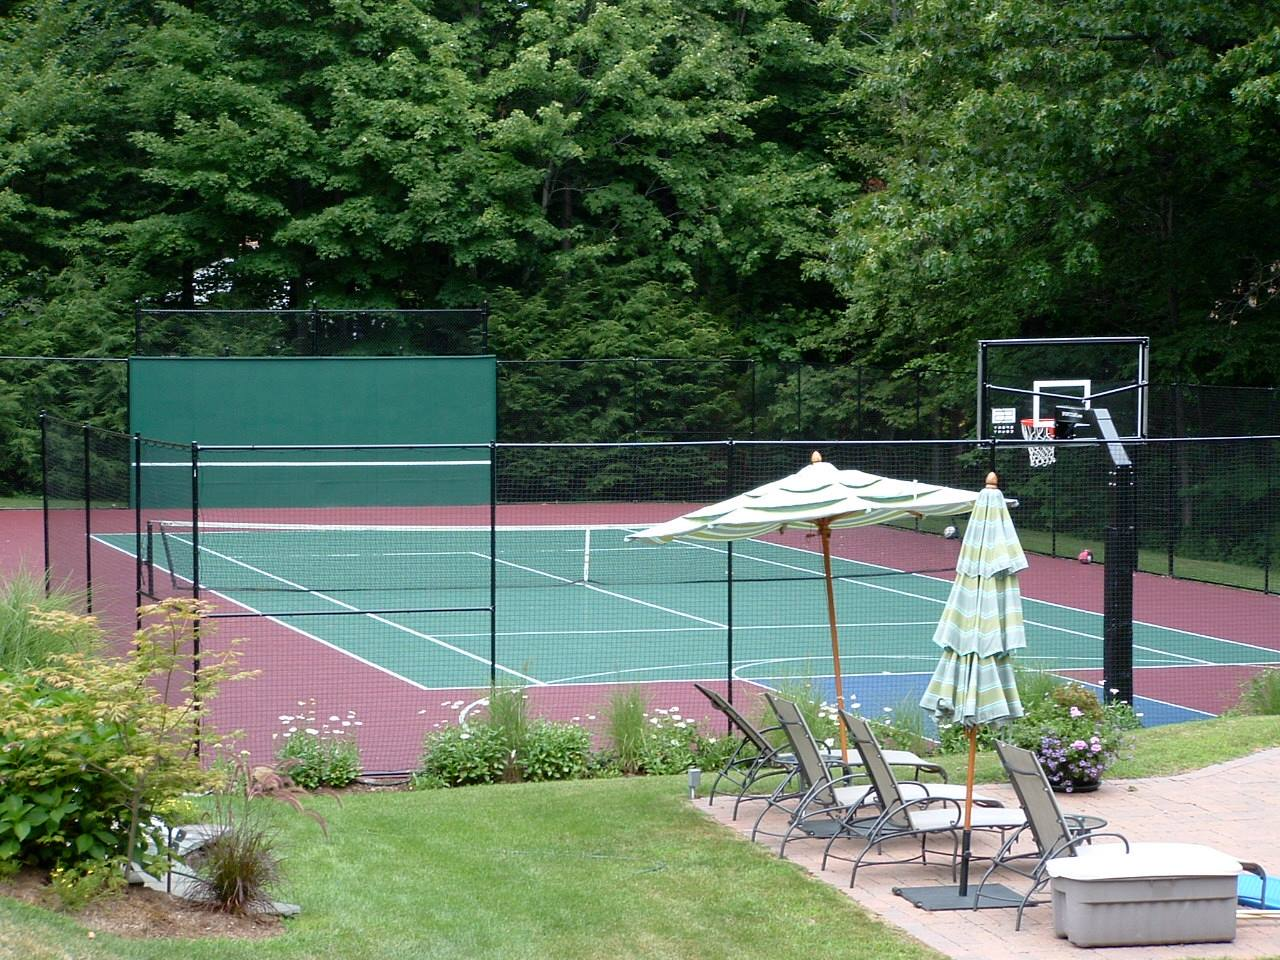 How to build a tennis court in your backyard 28 images for How to build basketball court